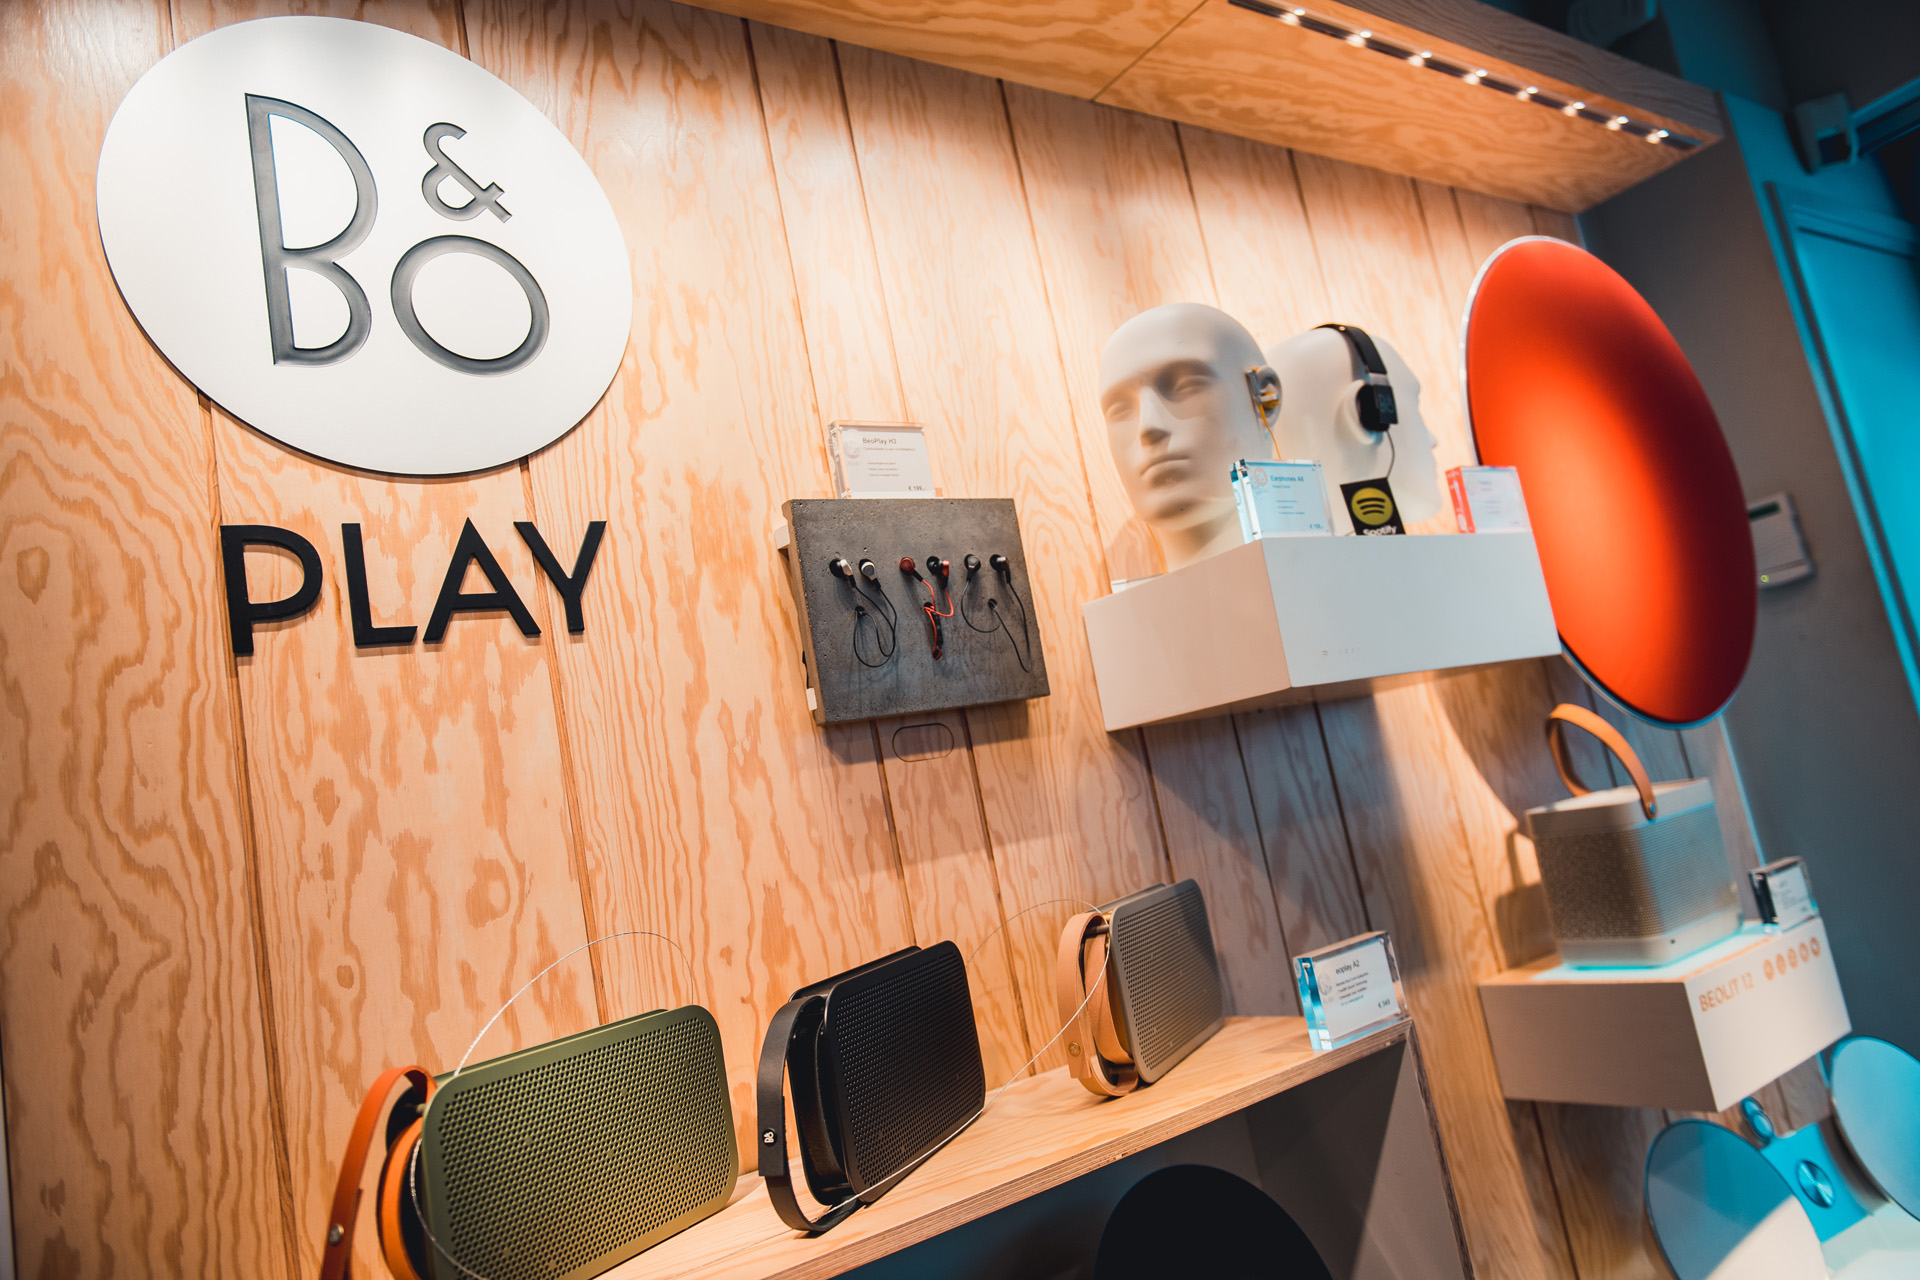 BEOPLAY-Benelux-MAC21-promotour-01